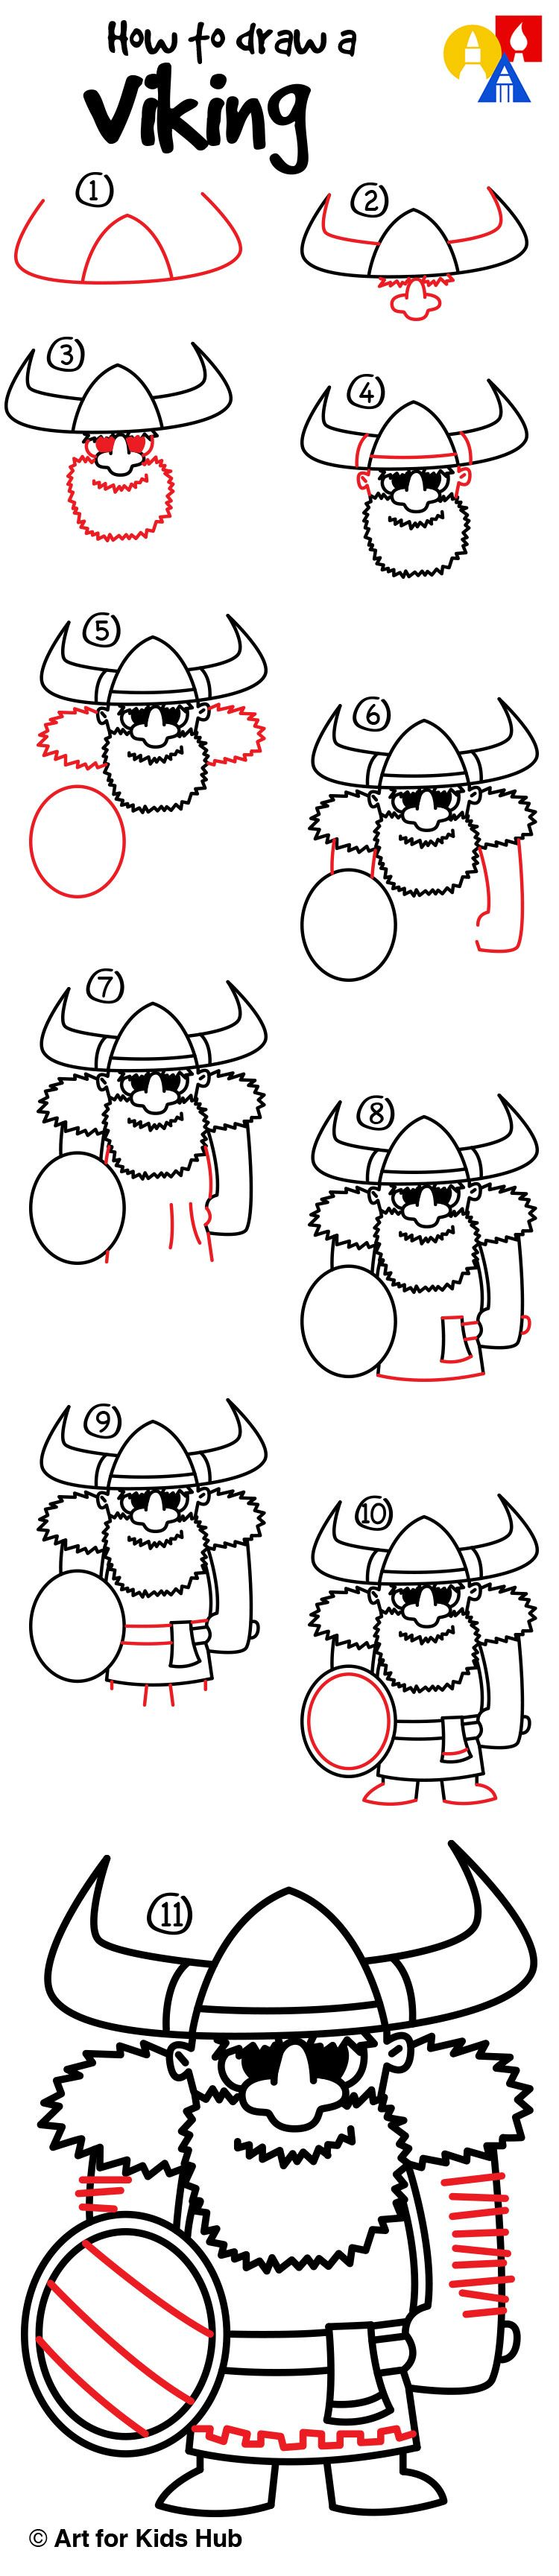 How To Draw A Viking - Art For Kids Hub - | Drawing ️ ️ ️ ...